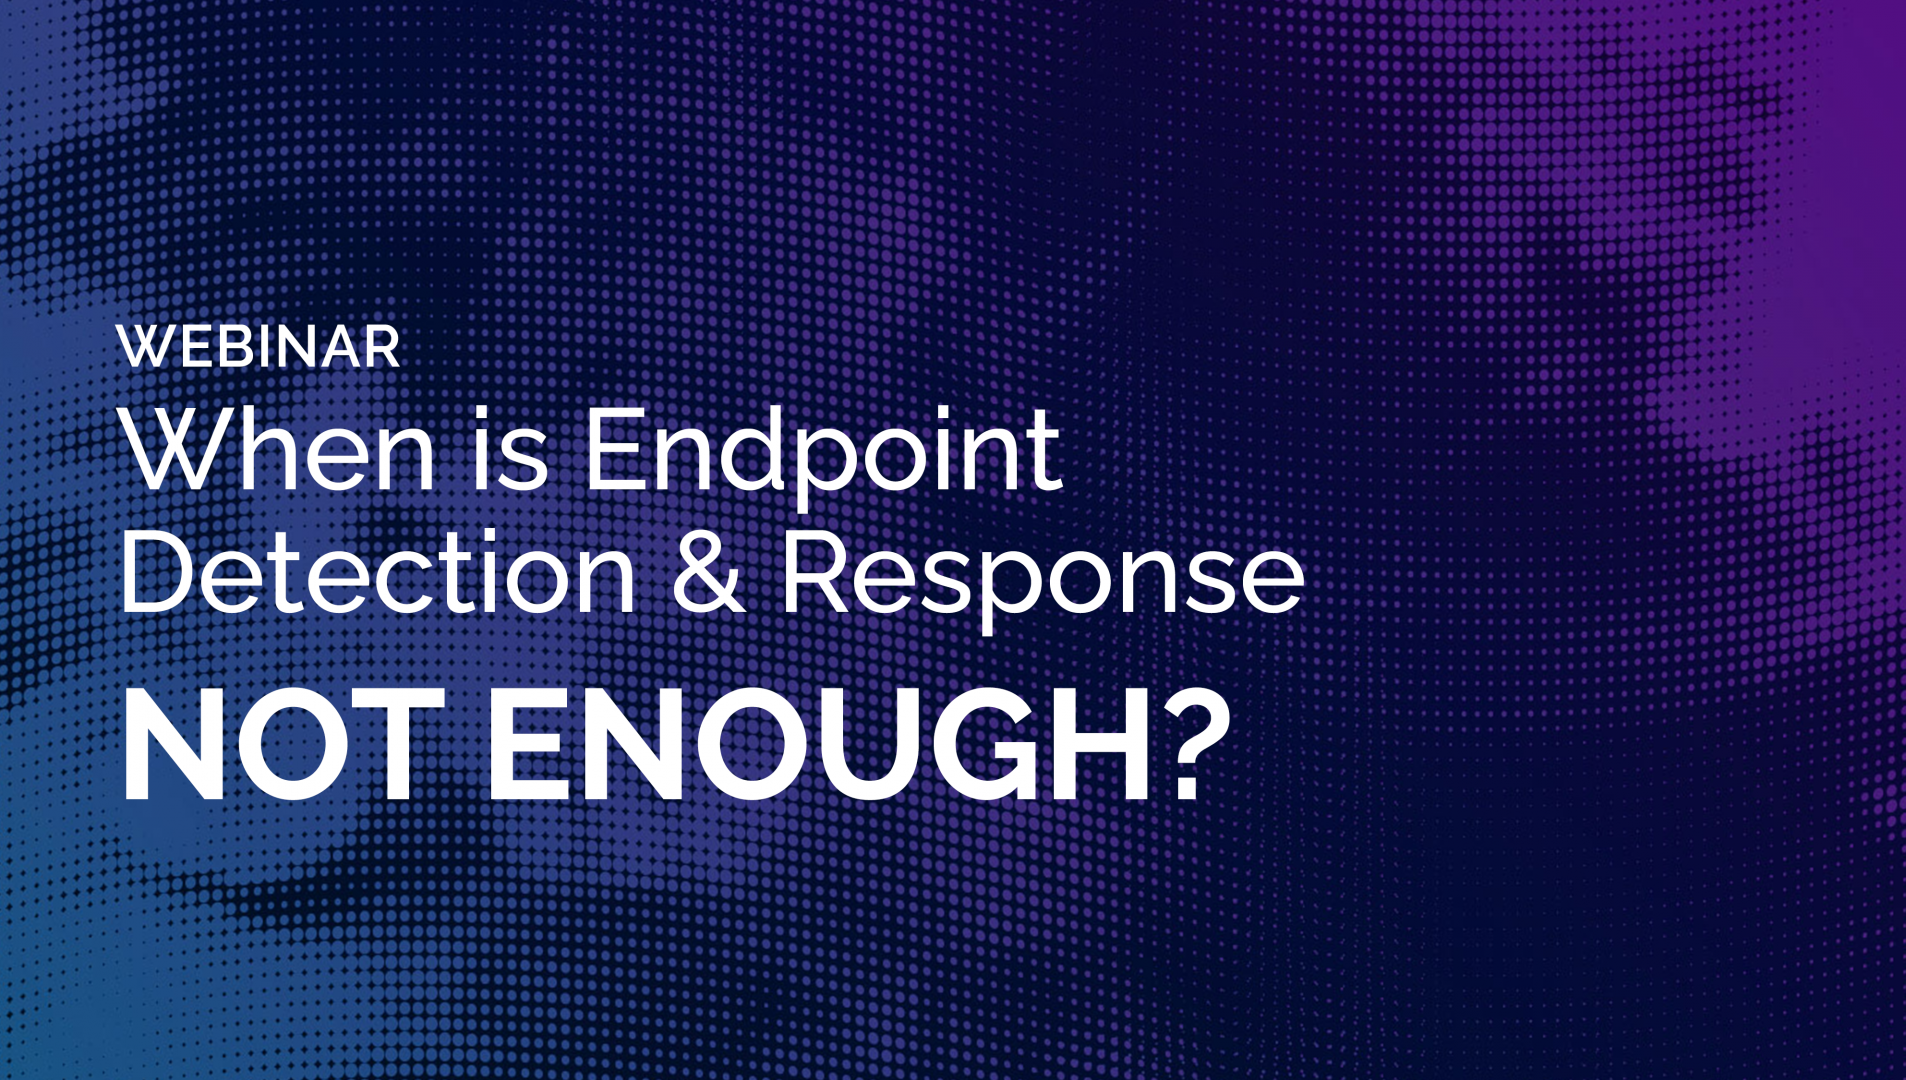 Webinar - When Is Endpoint Detection & Response Not Enough?